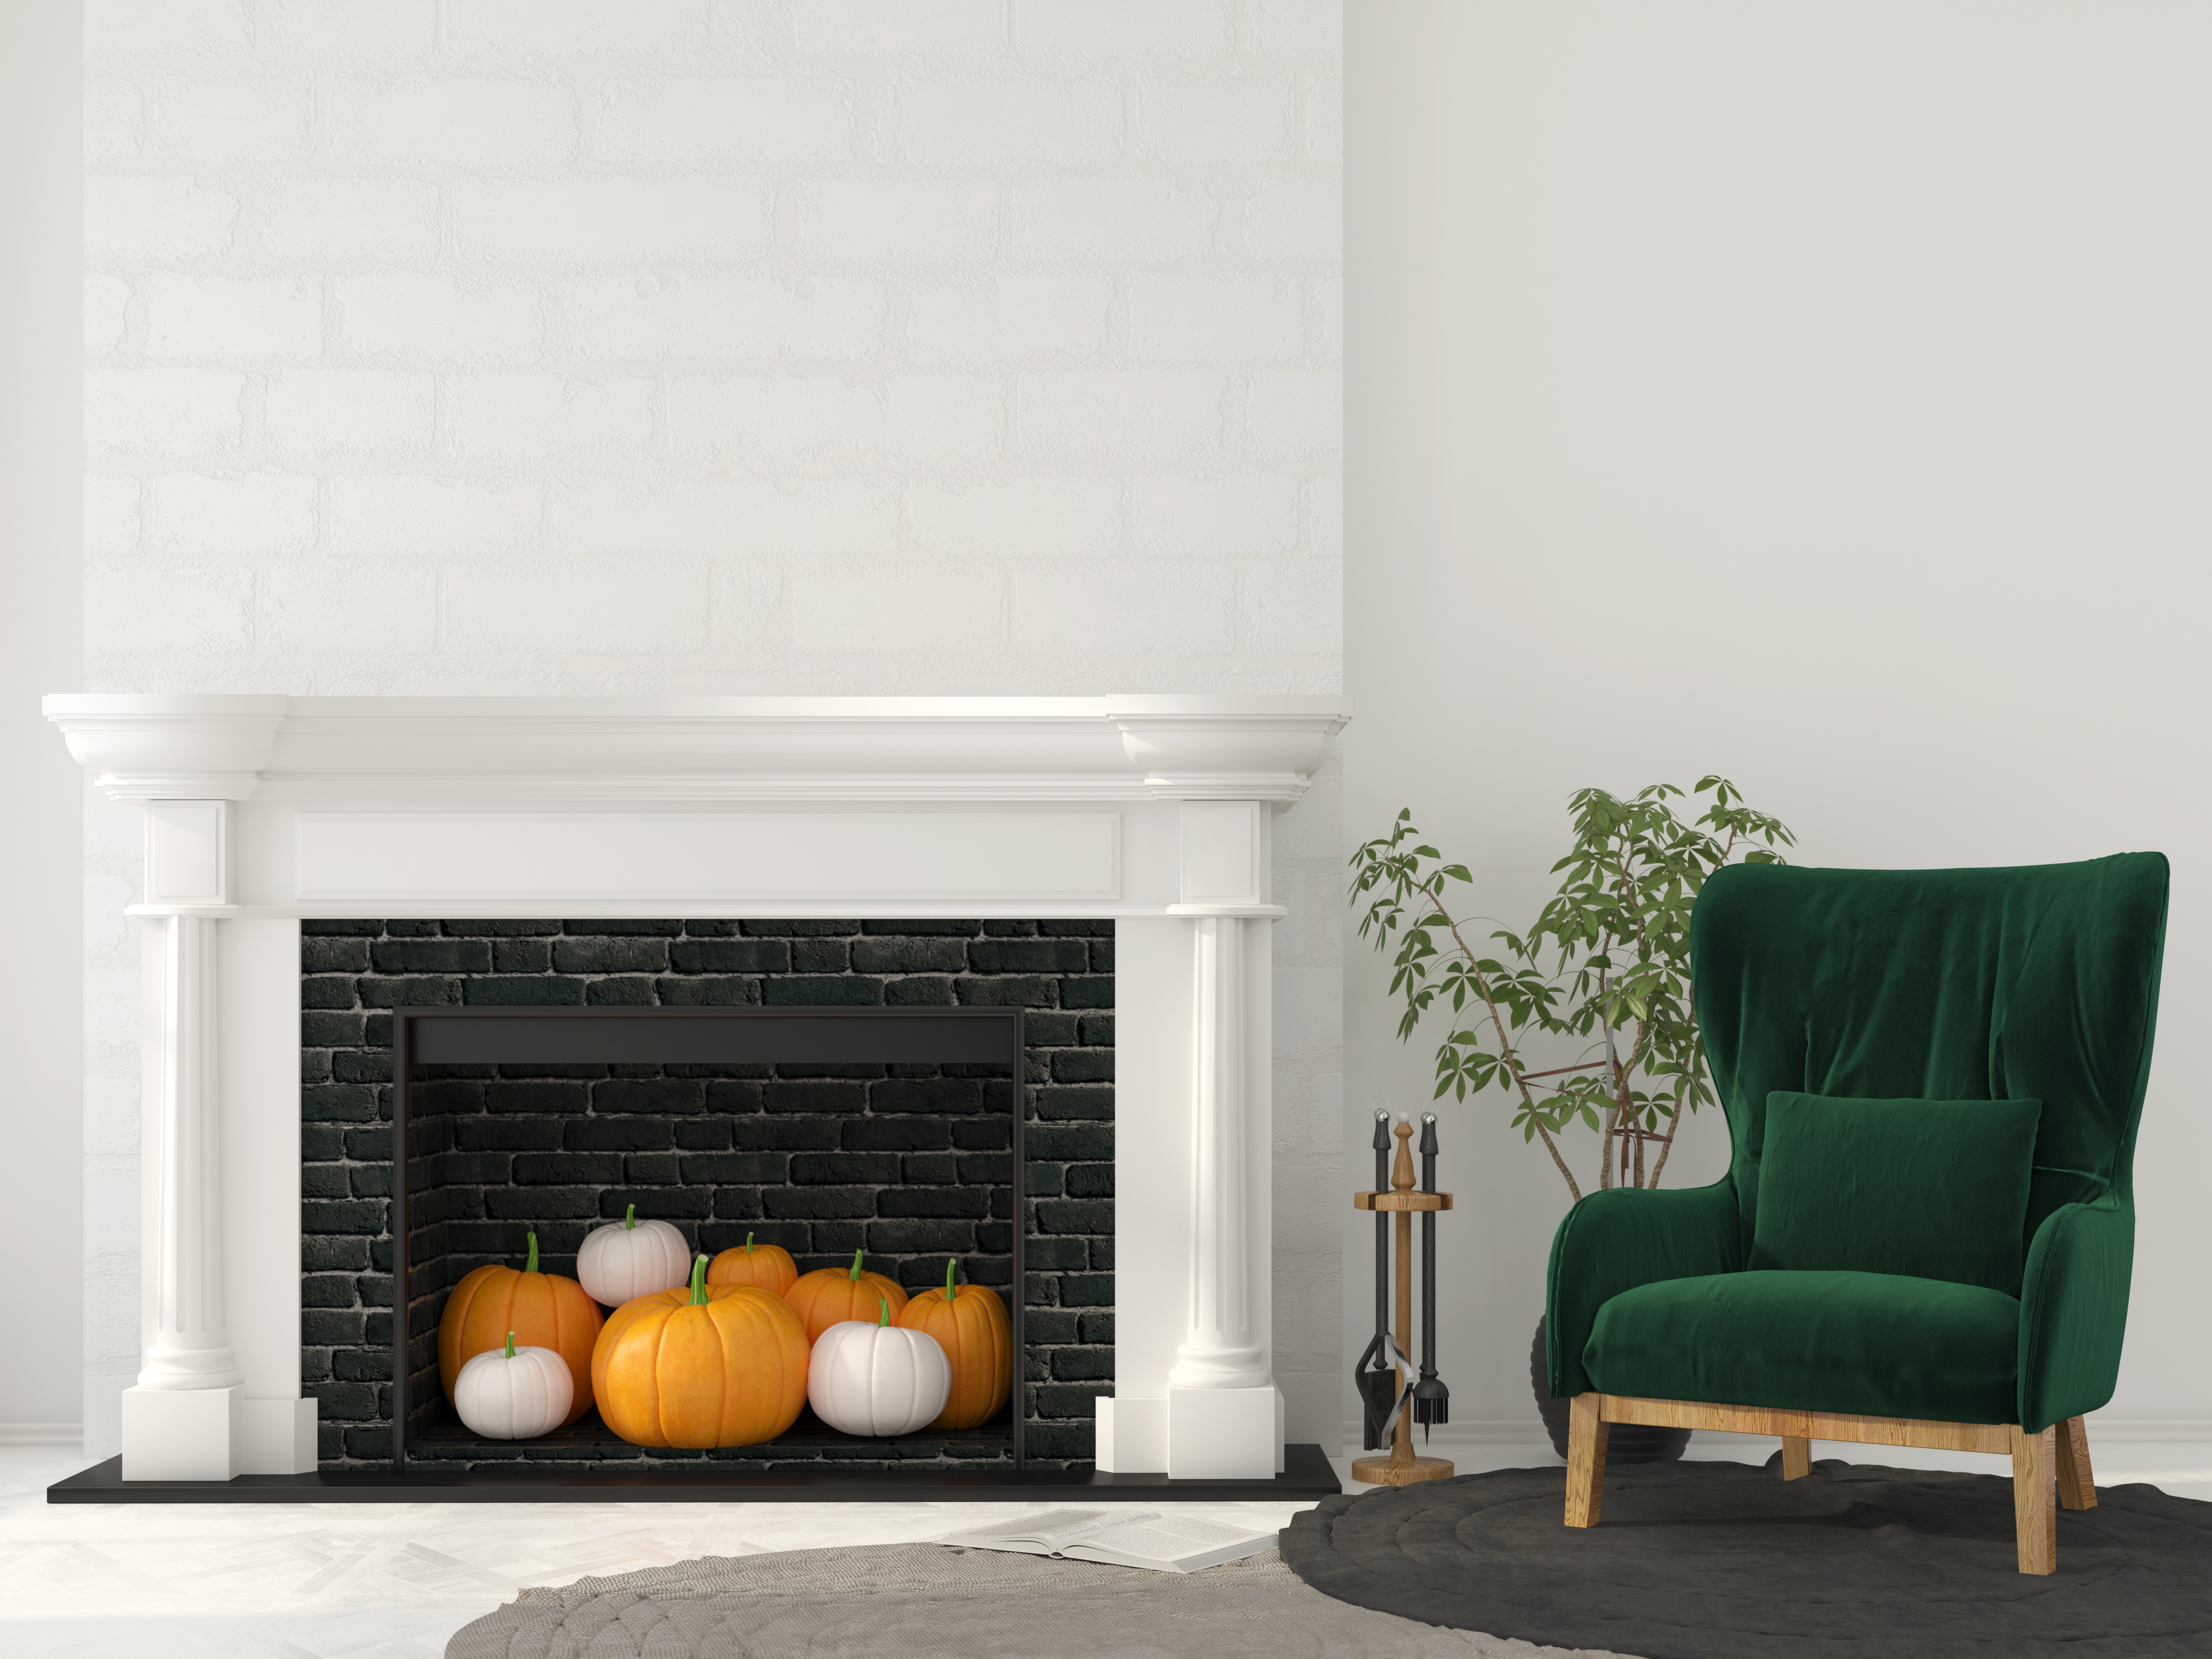 Interior decoration for Halloween. Classic fireplace with pumpkins inside and green armchair